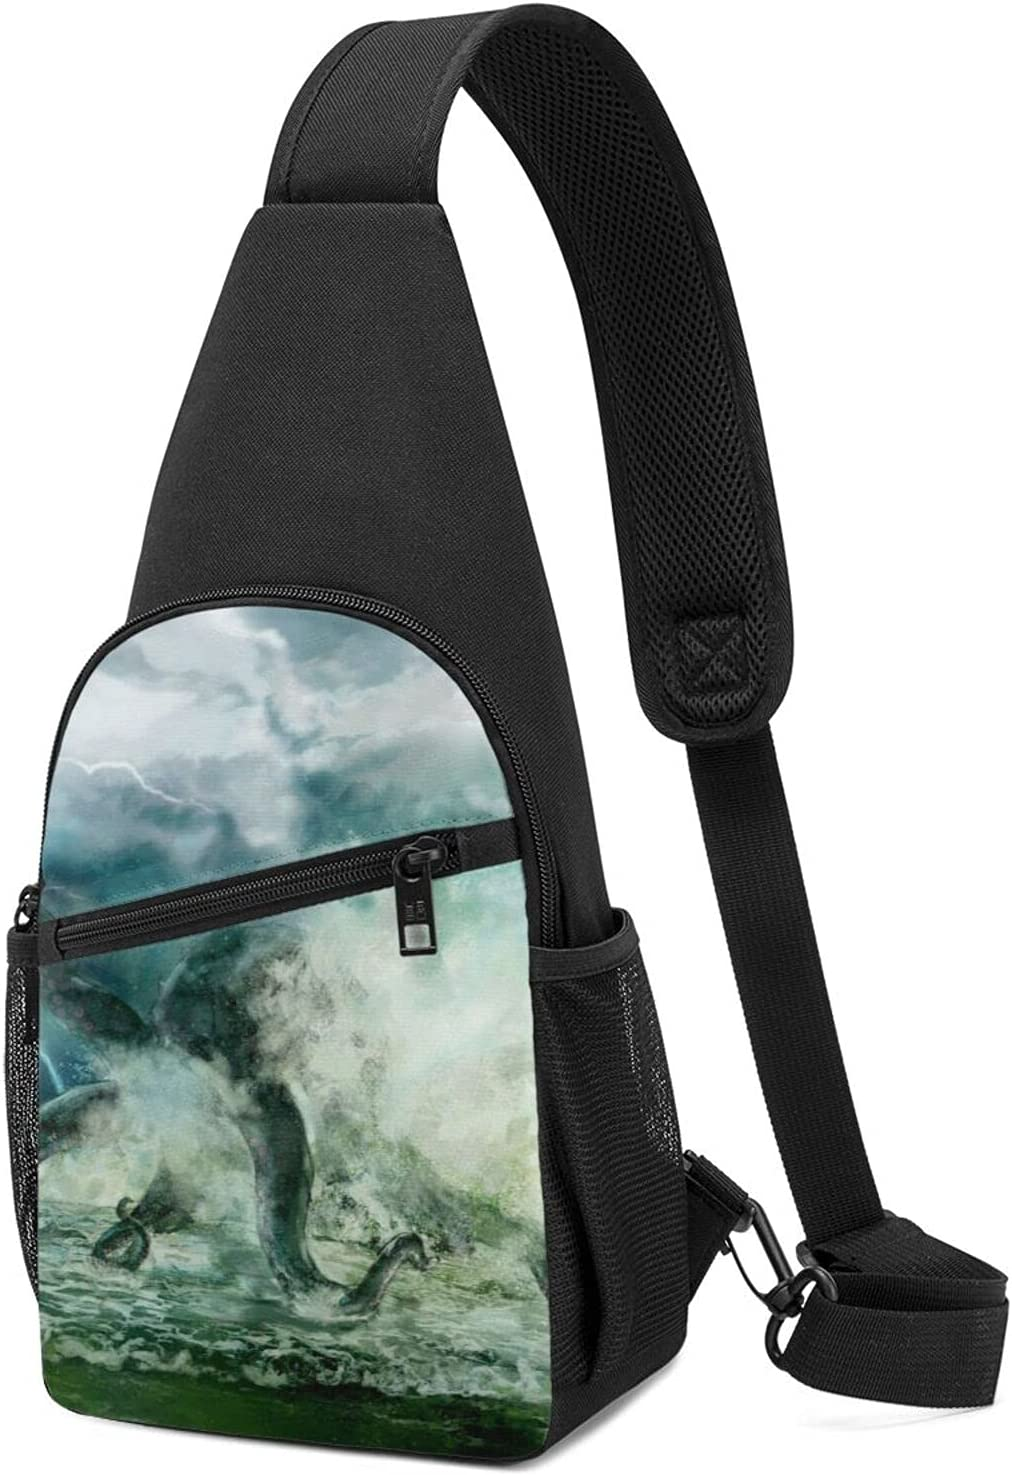 Crossbody Sling Backpack Bag Giant Regular discount Tr Large-scale sale In Storm Octopus The